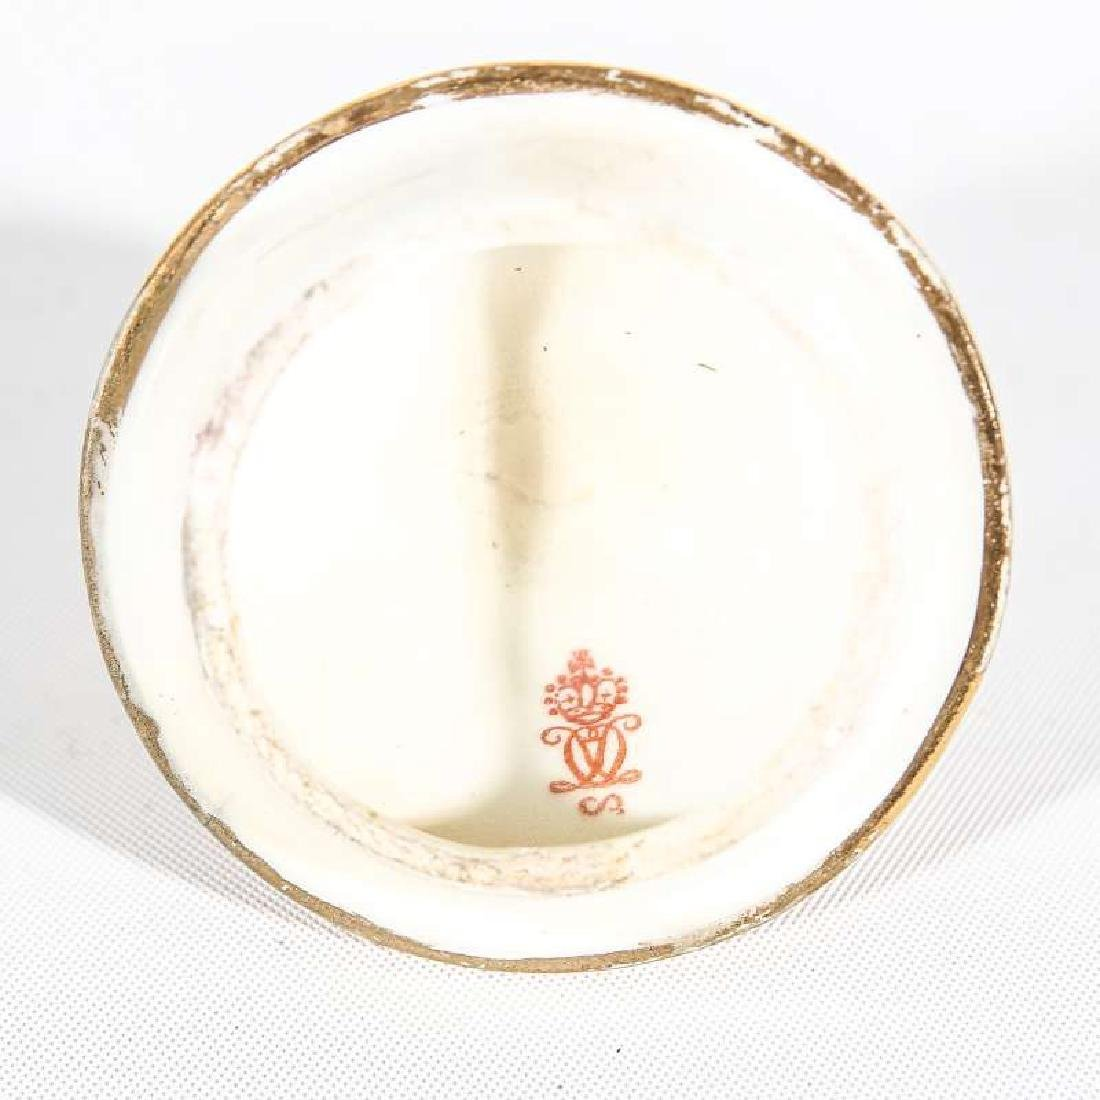 A LATE 19TH C. ROYAL CROWN DERBY COVERED VASE - 7